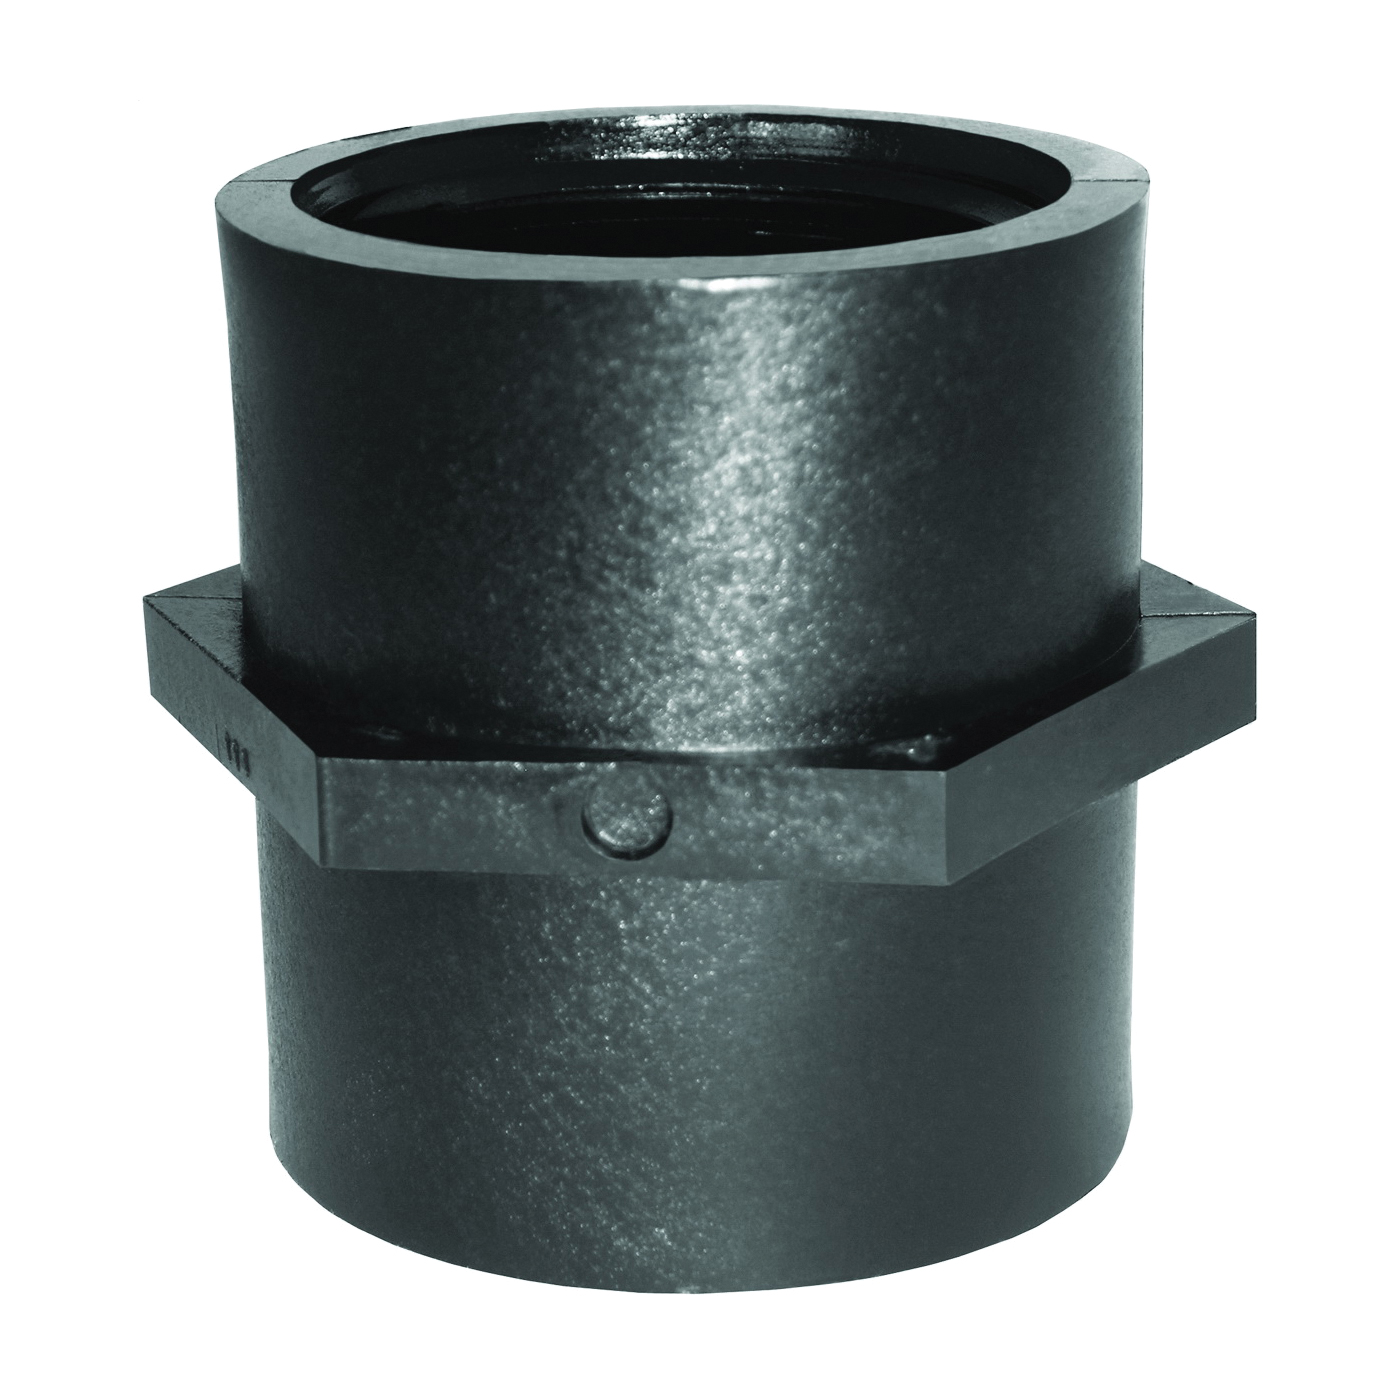 Picture of GREEN LEAF FTC 114 P Pipe Coupler, 1-1/4 in, Female NPT